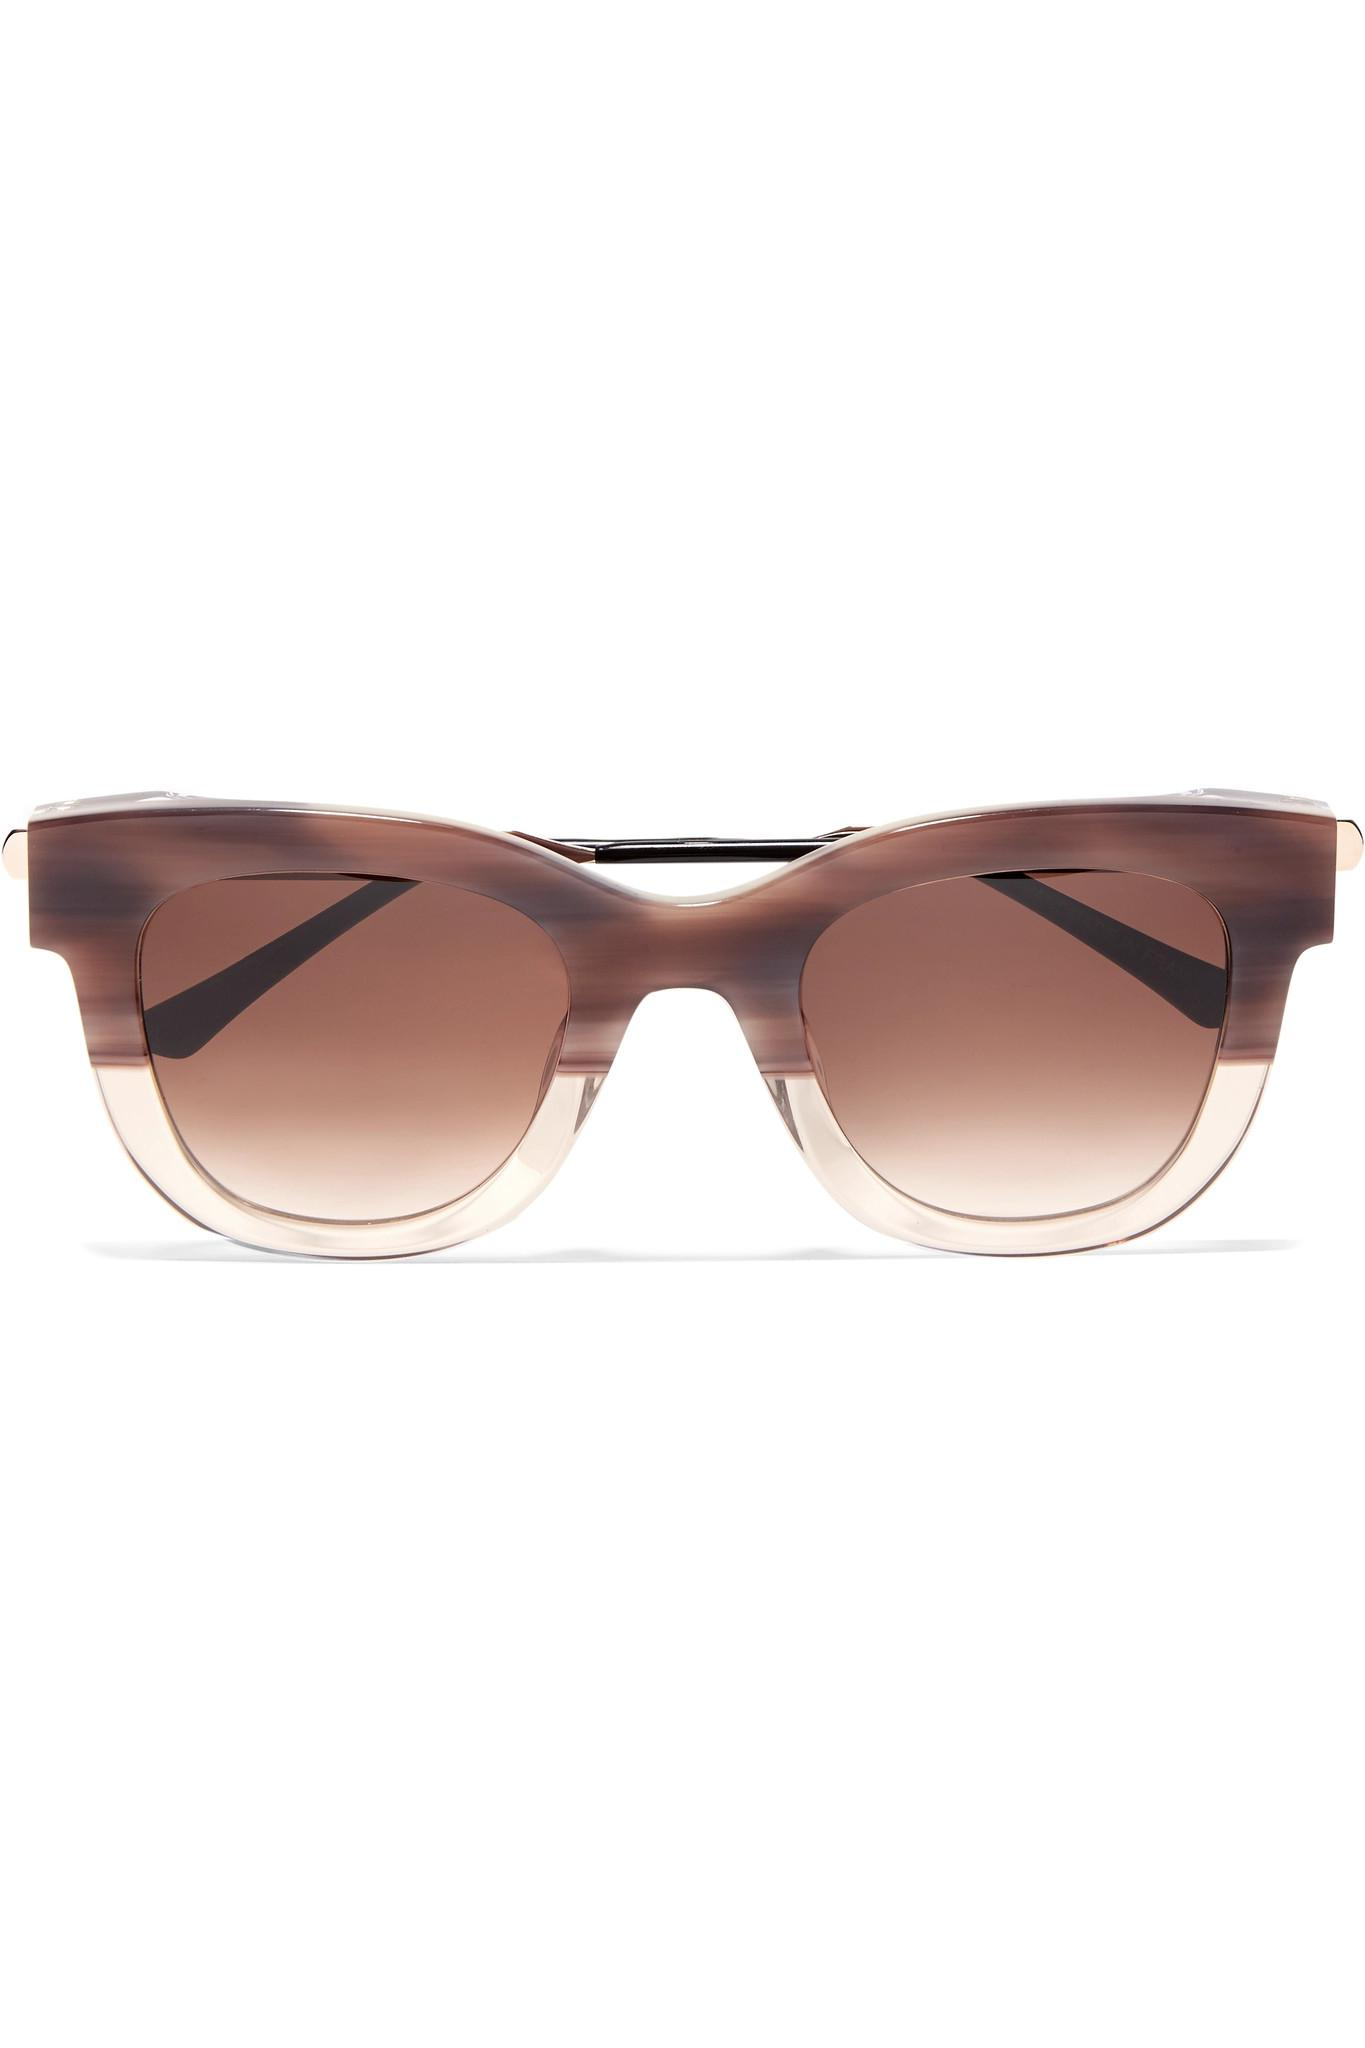 ca85b58cb5 Thierry Lasry. Women s Pink Sexxxy Cat-eye Acetate And Gold-tone Sunglasses